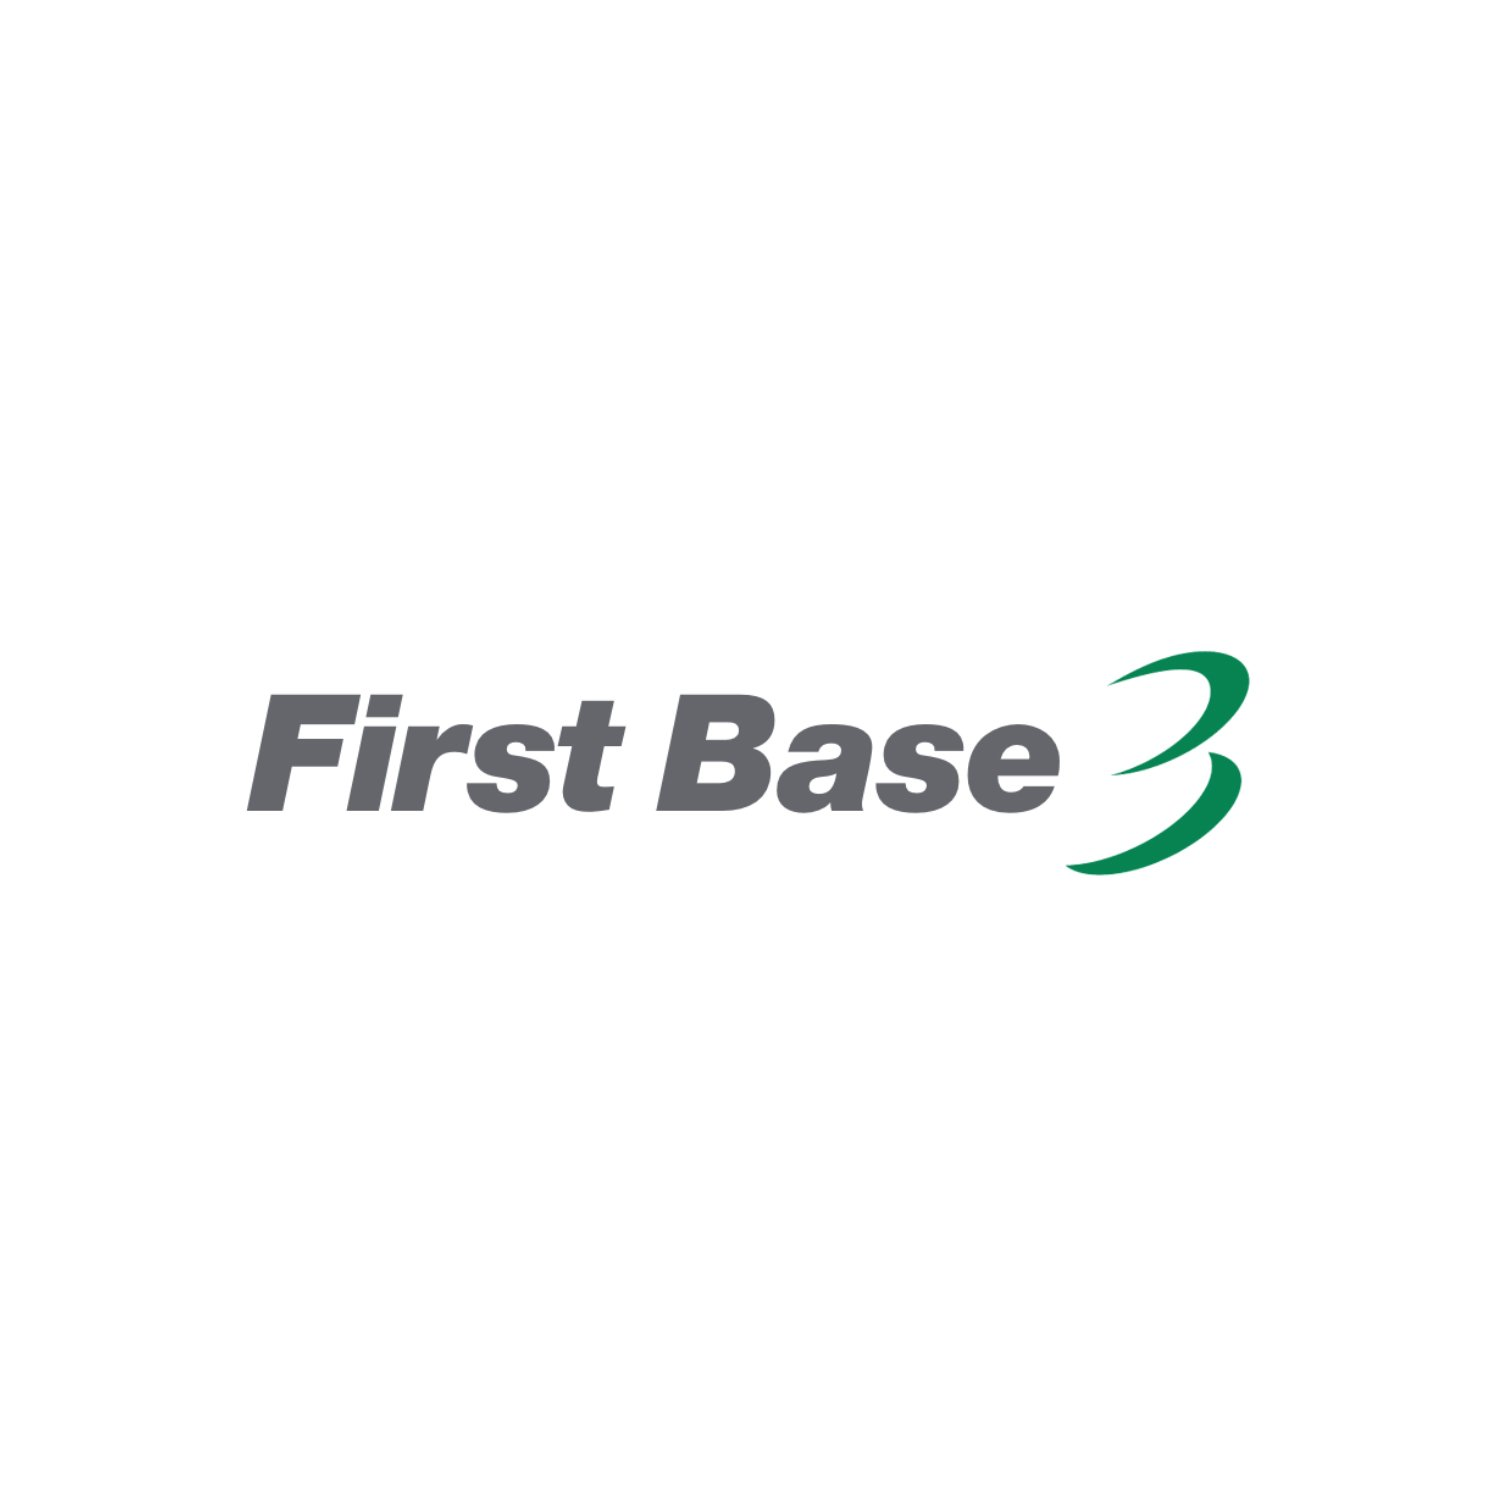 Gorra Seguridad ABS - First Base 3 - Certificado: EN 812 A1 ...